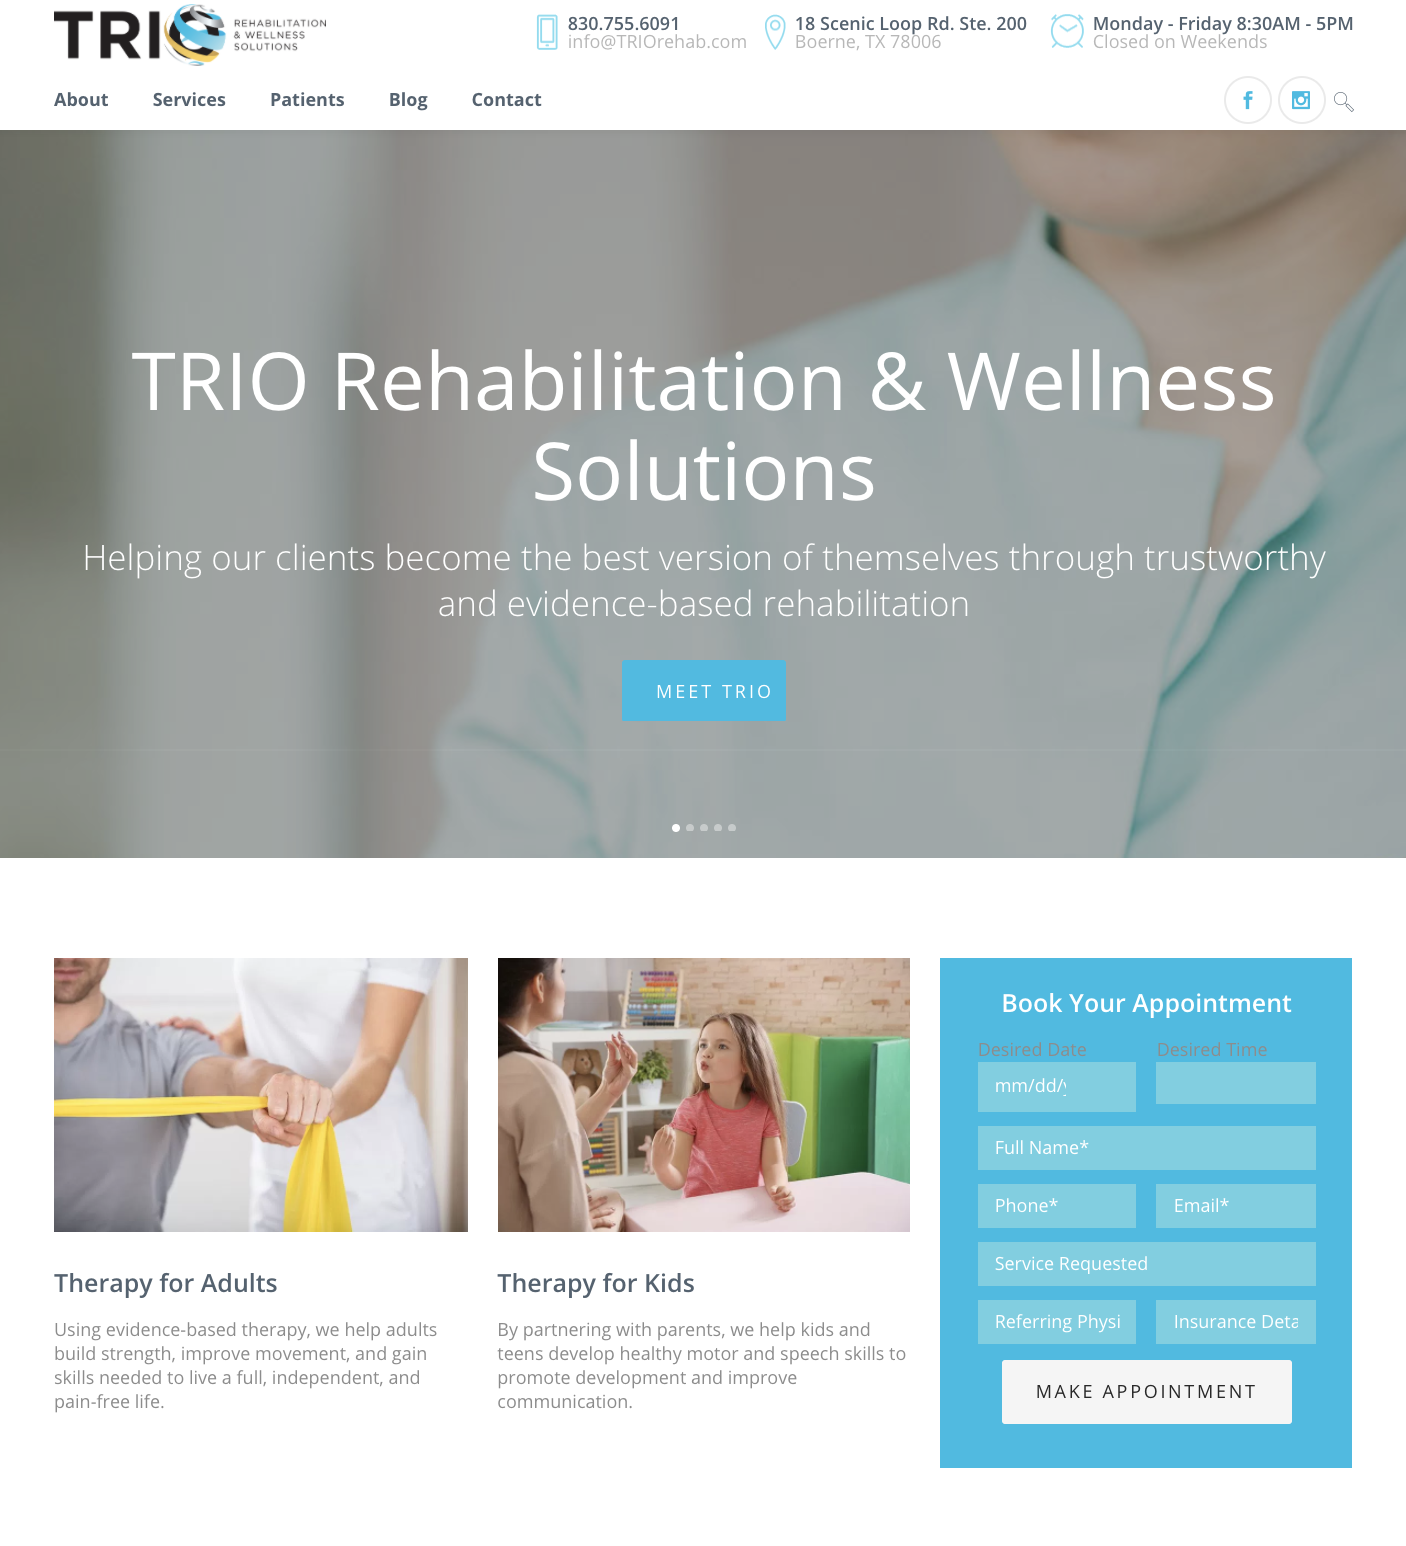 Marketing Strategies For Drug And Alcohol Treatment Centers